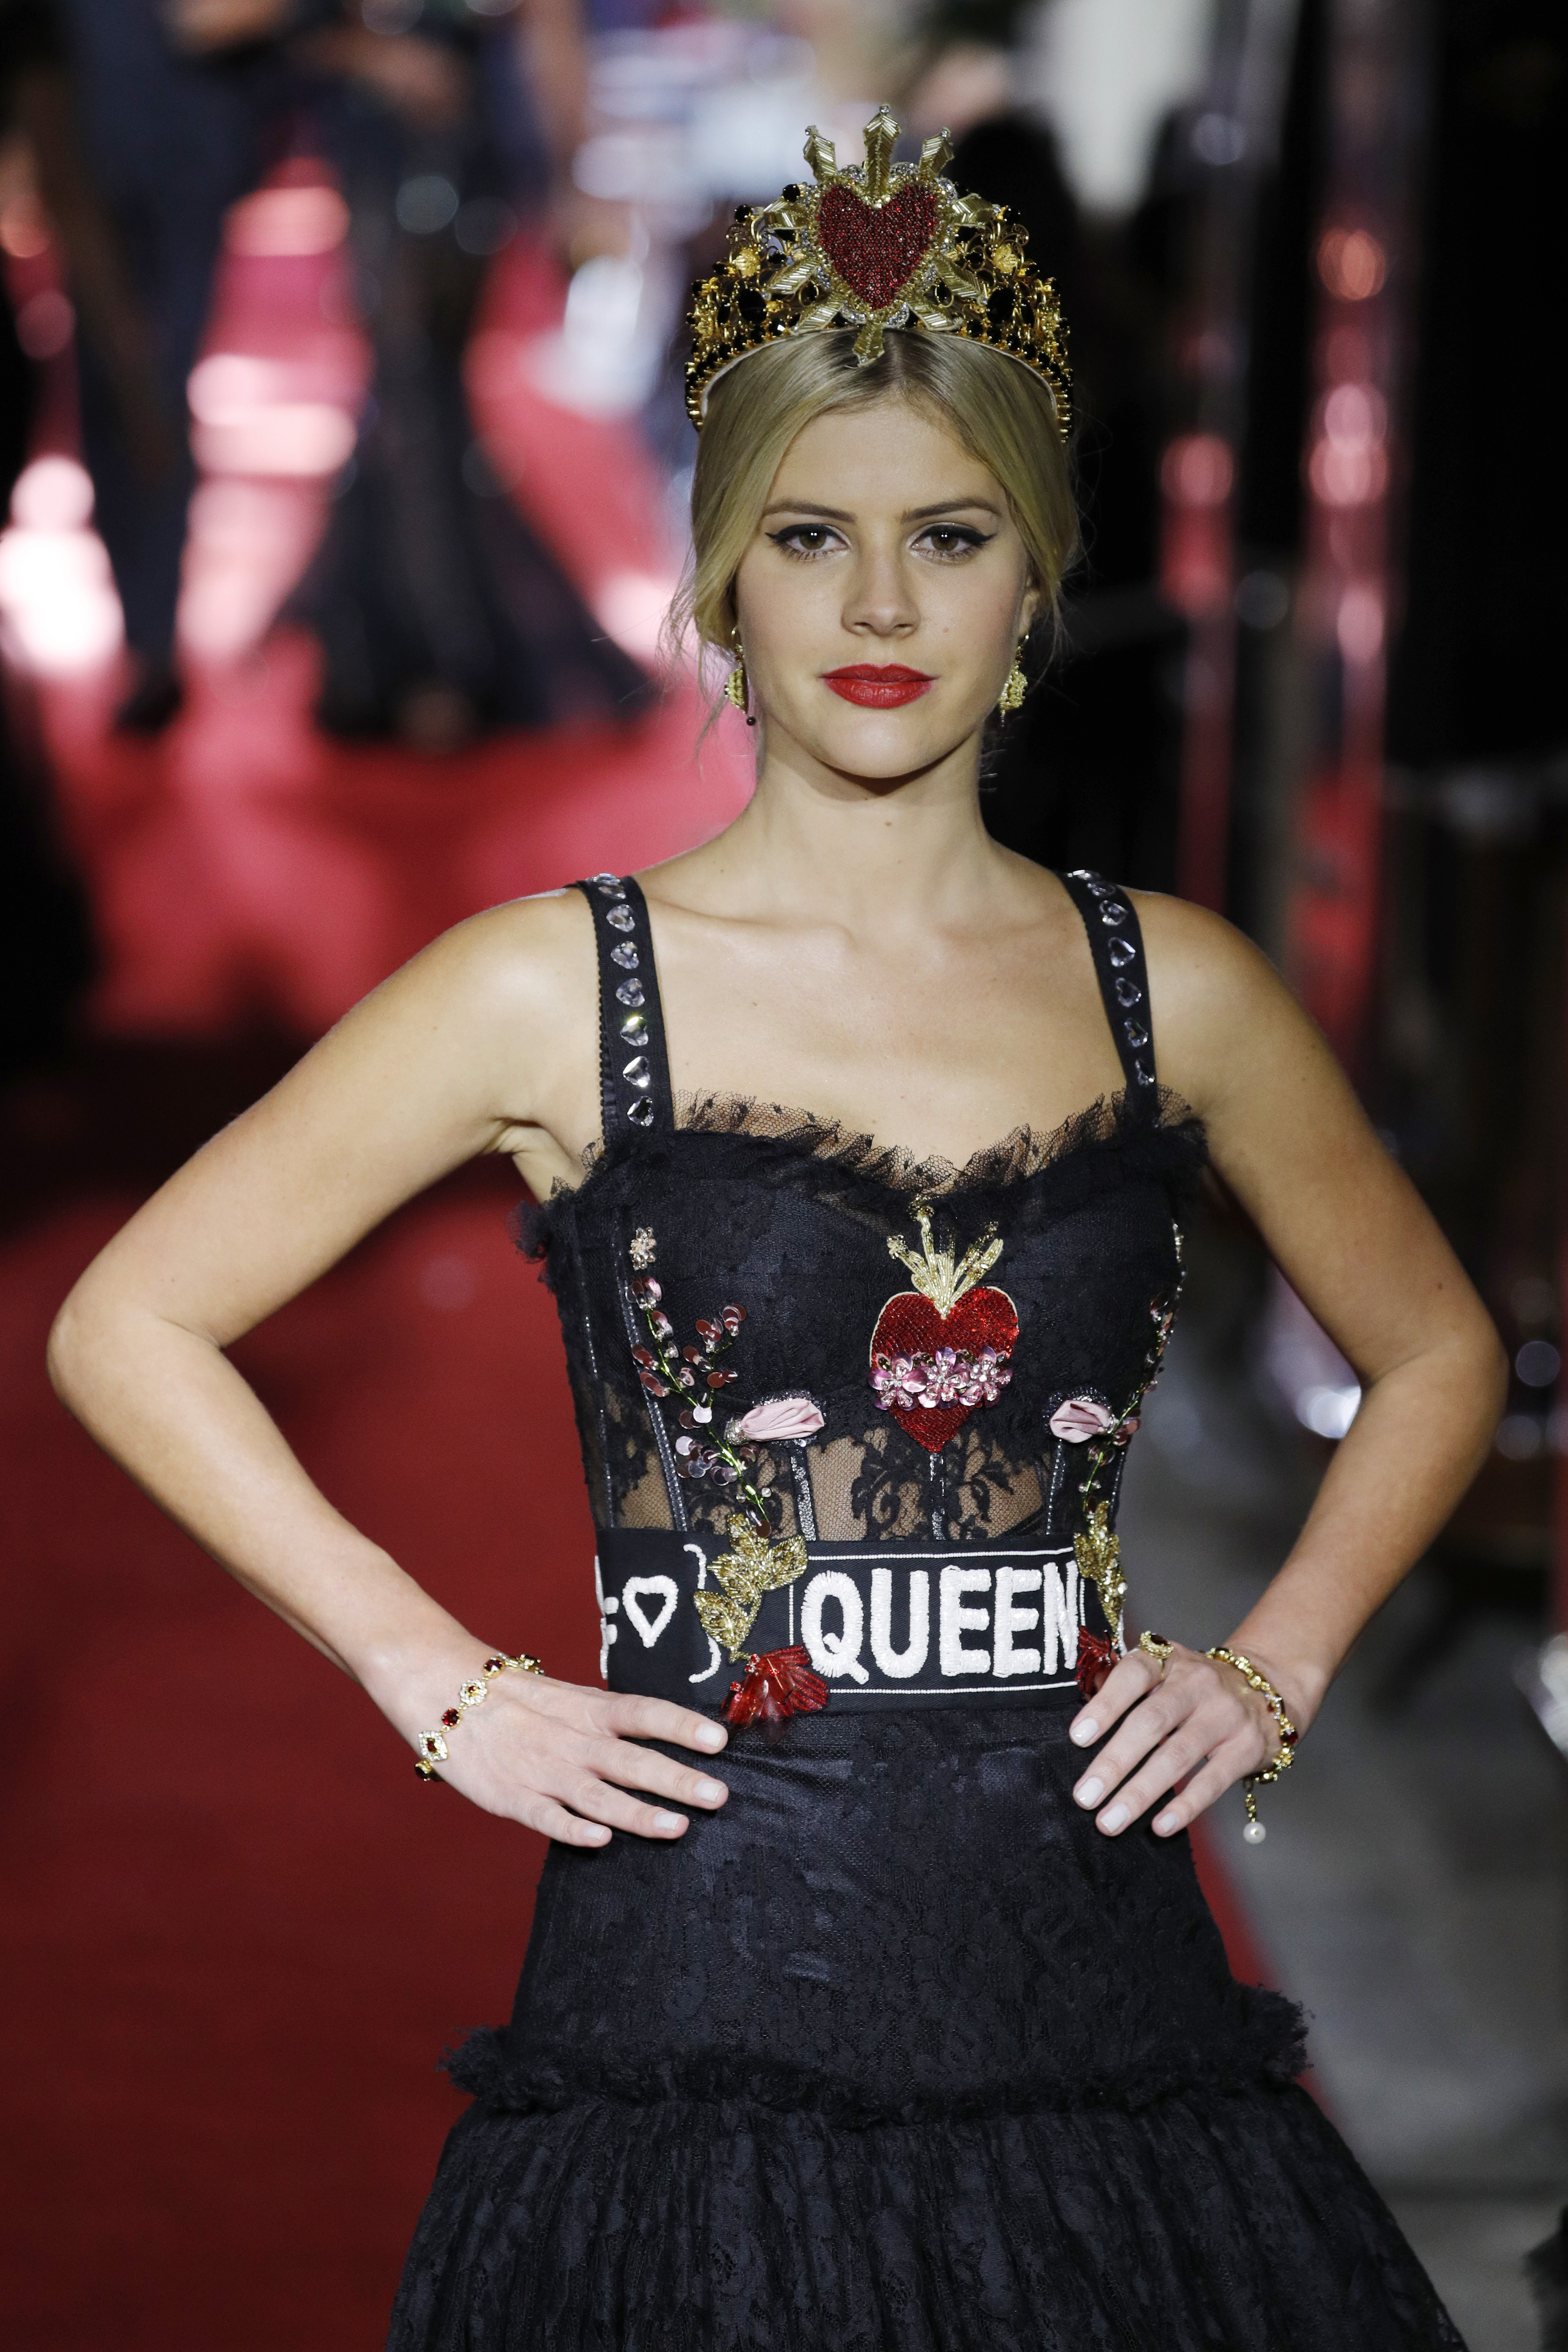 Lala Rudge no desfile da Dolce & Gabbanna no ano passado (Foto: Getty Images)